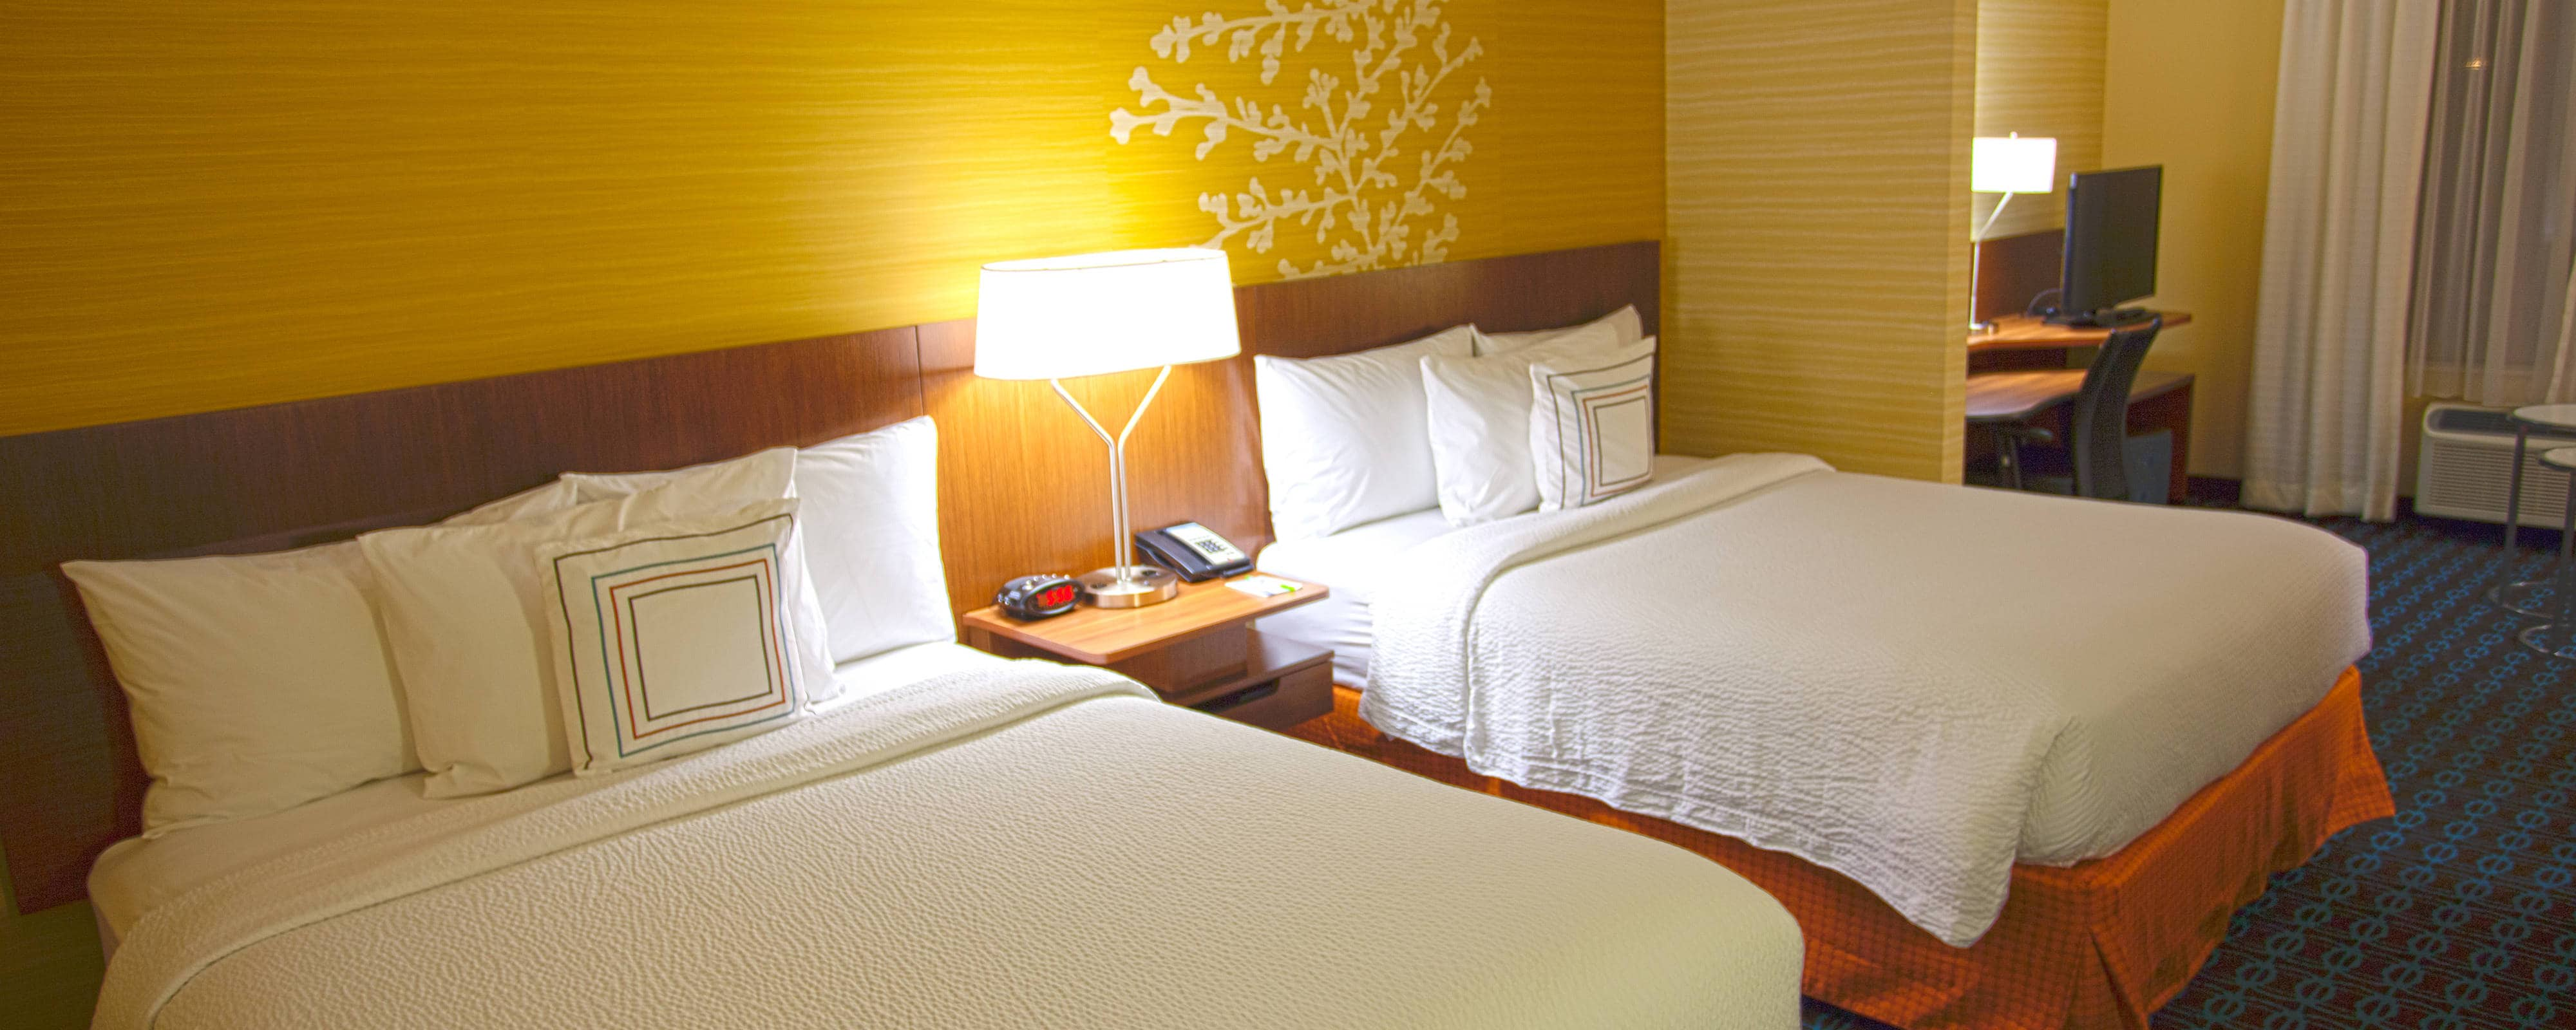 Studio Suite mit Queensize-Bett im Fairfield Inn Columbus Airport